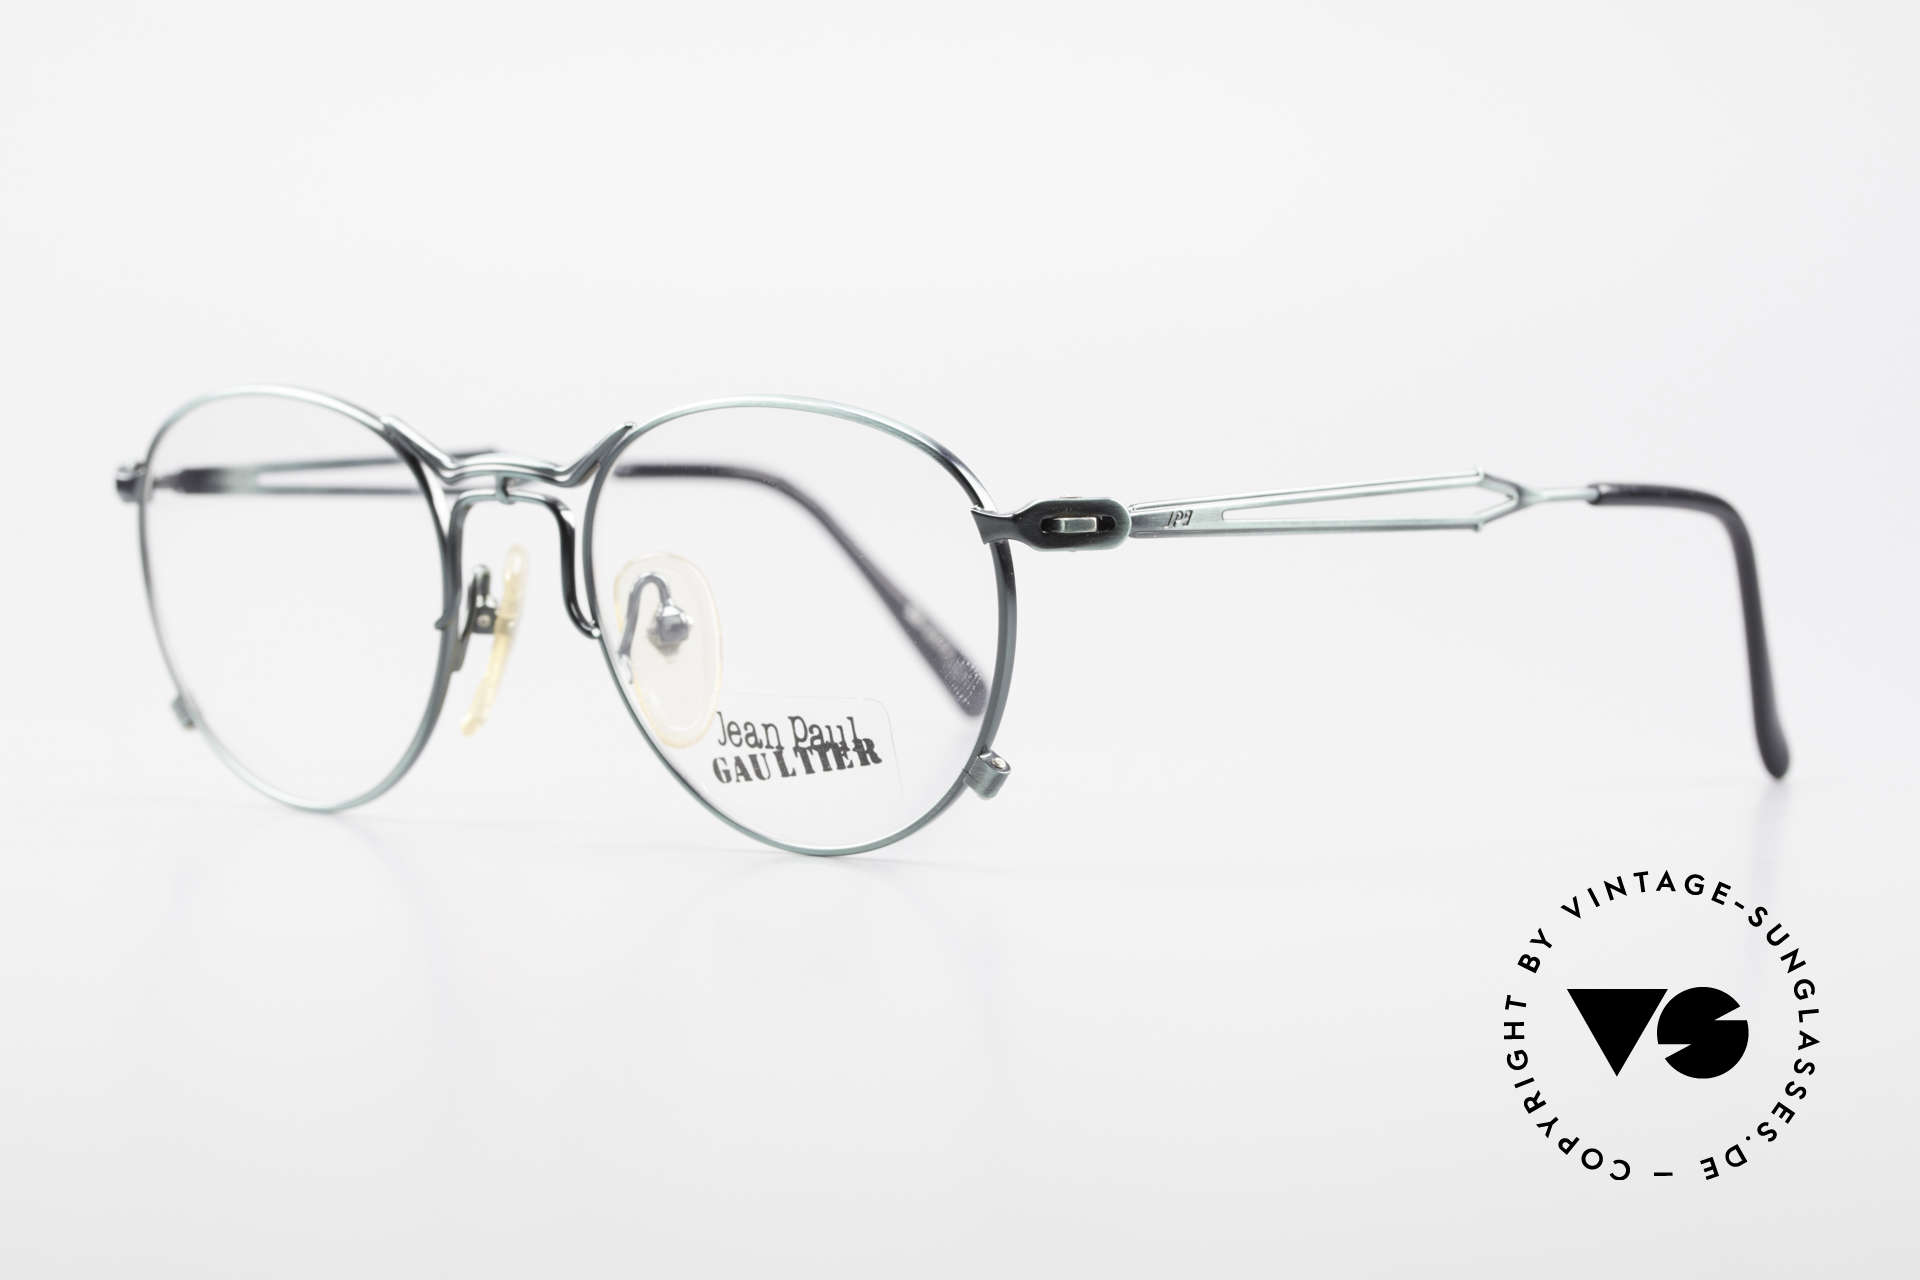 Jean Paul Gaultier 55-2177 Rare Designer Eyeglasses JPG, a real designer frame in top-notch quality from 1996, Made for Men and Women